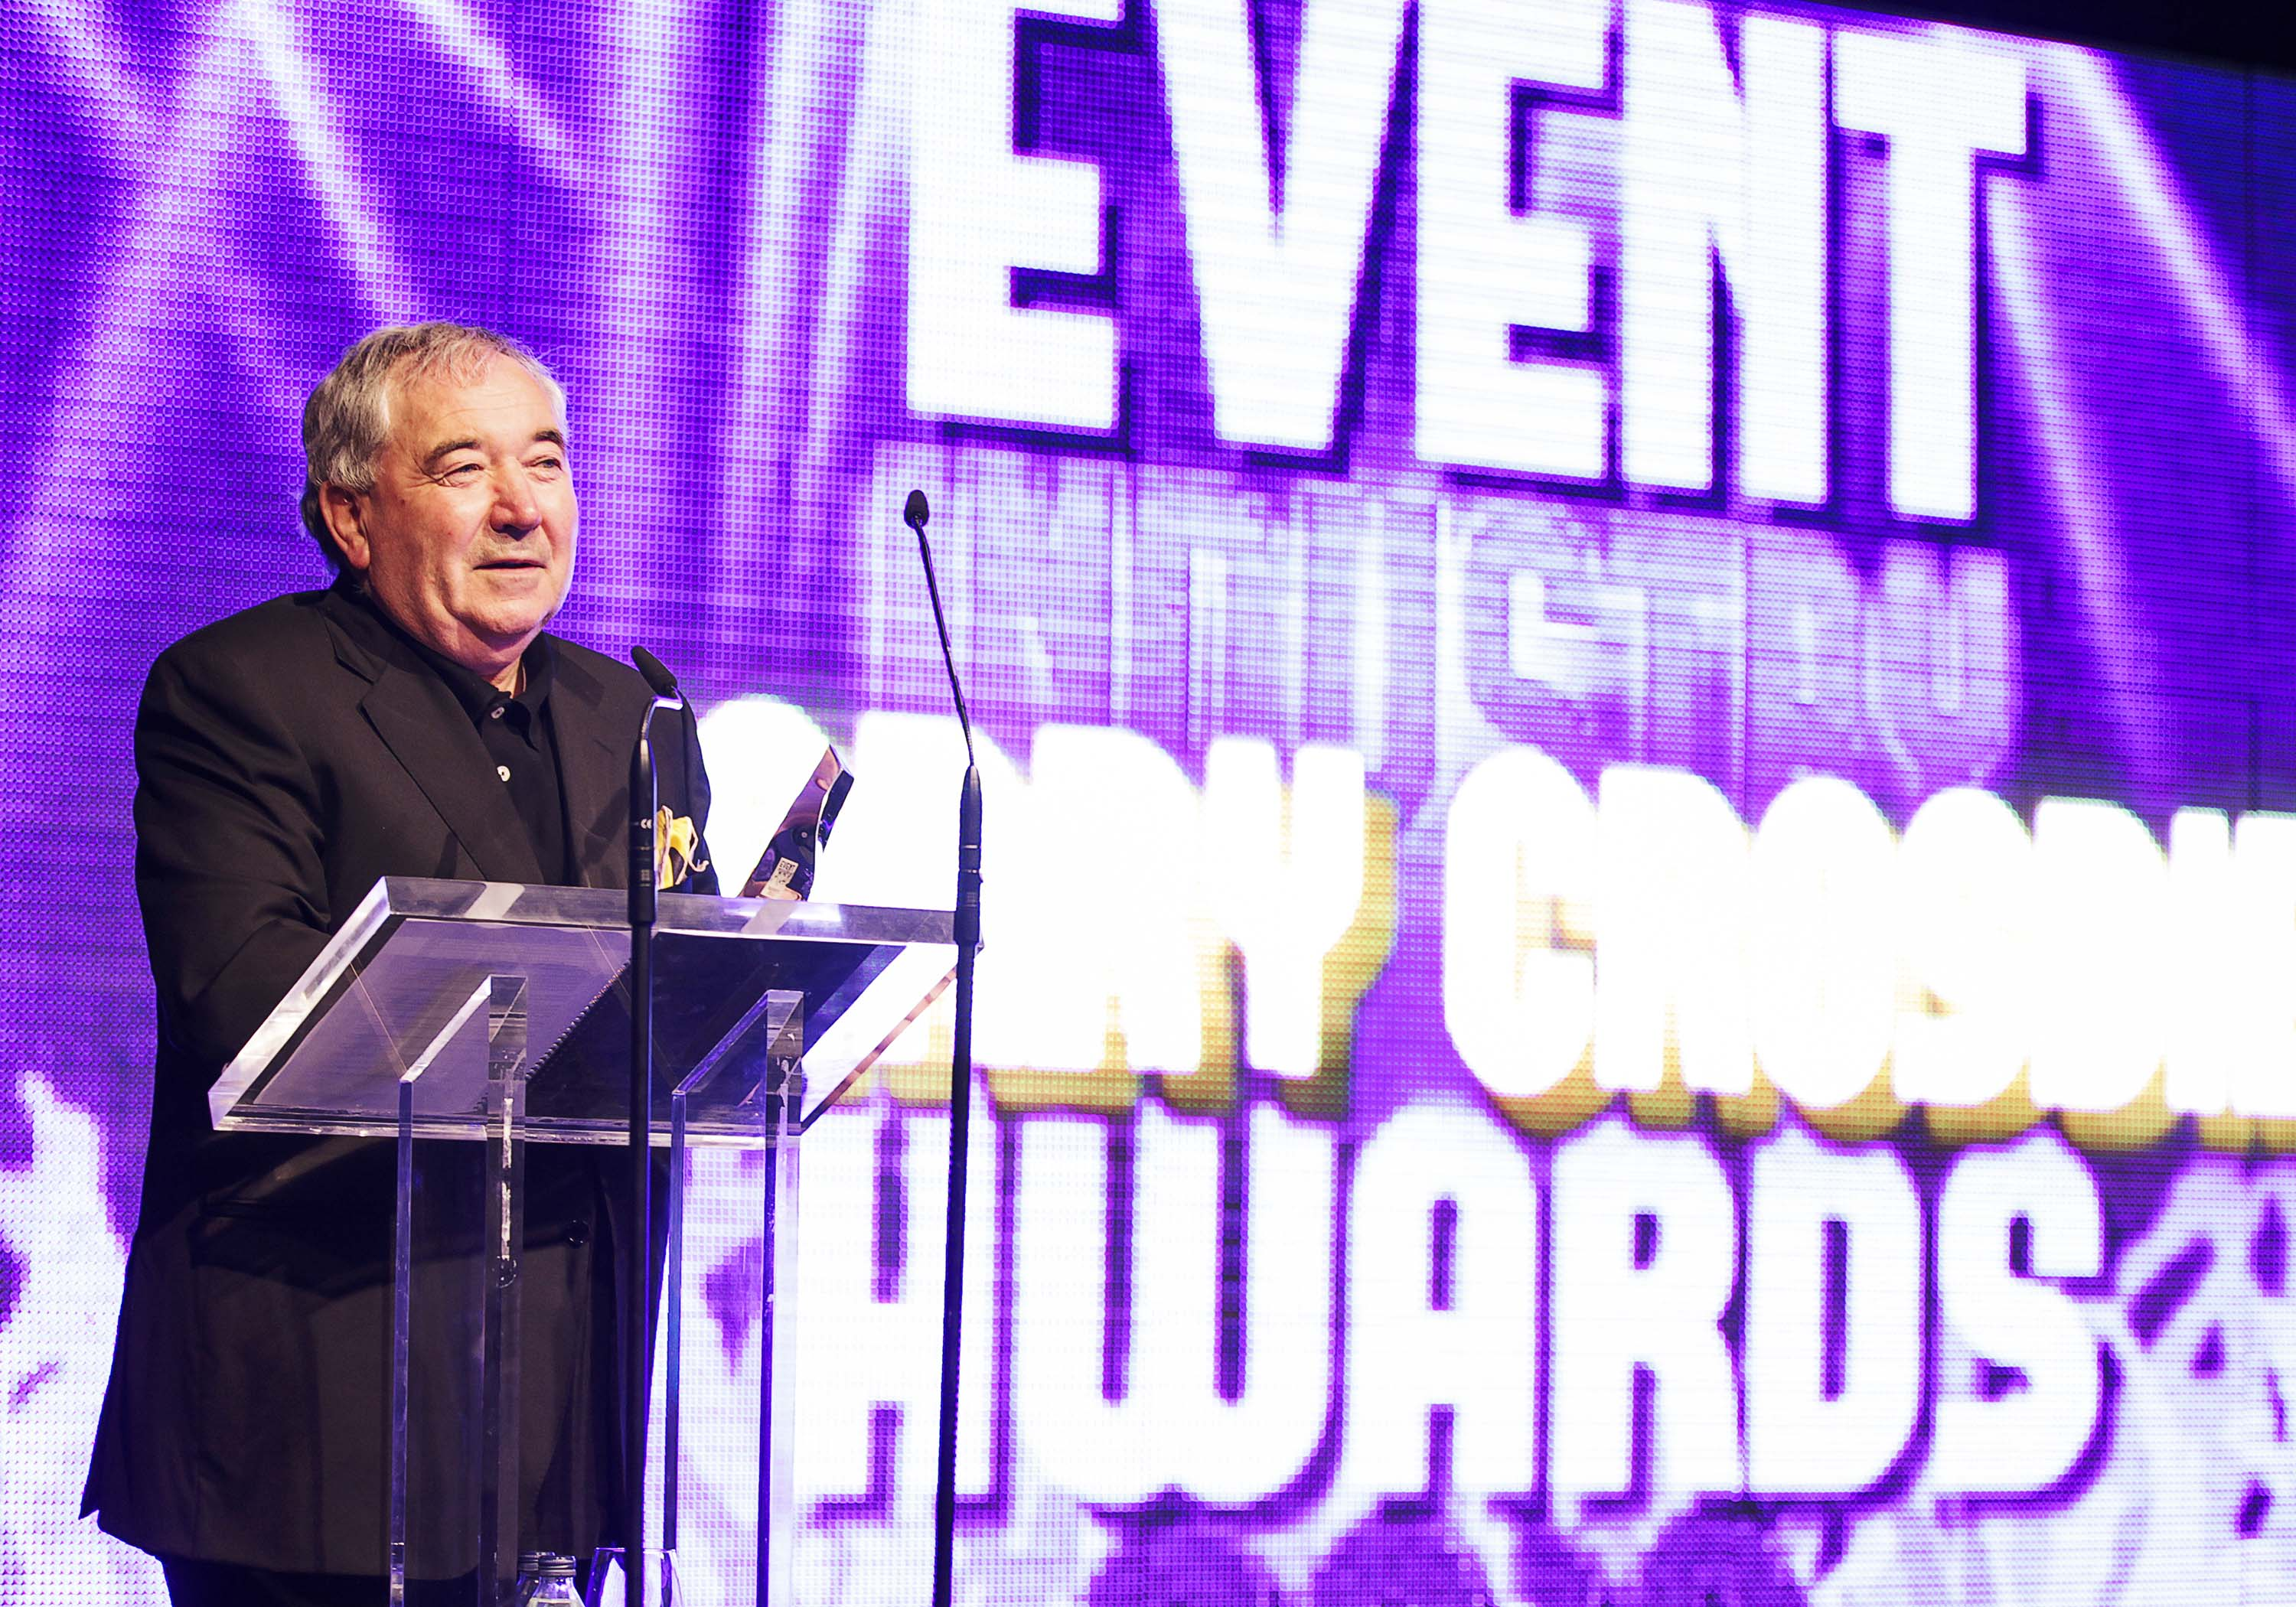 Event Industry Awards